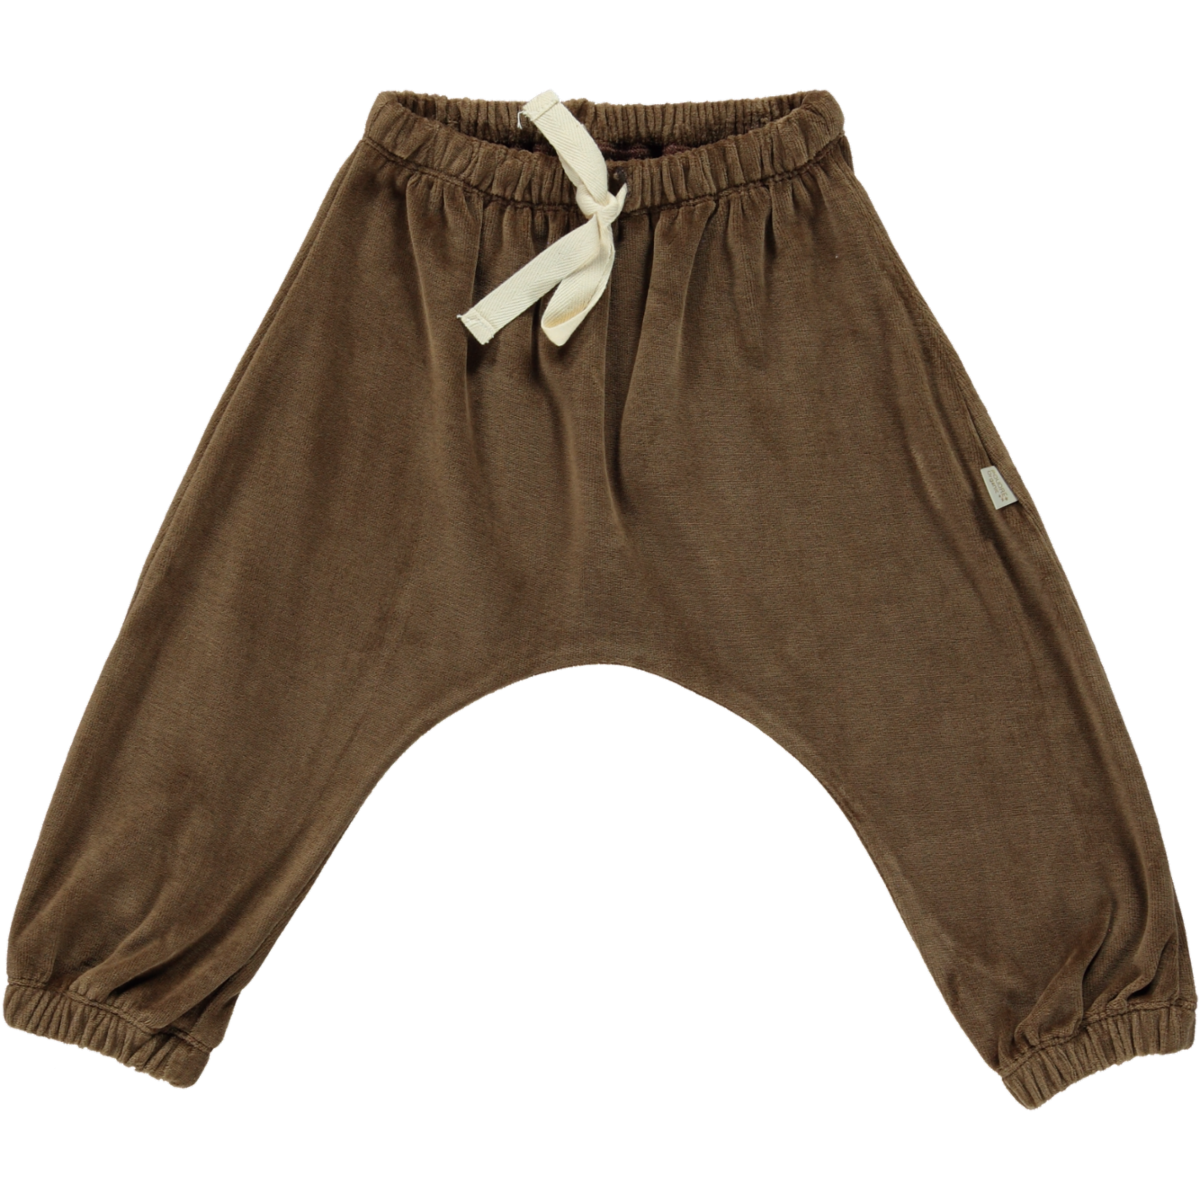 Pantaloni Poudre Organic din bumbac - Cannelle Carafe-Poudre Organic-HipHip.ro